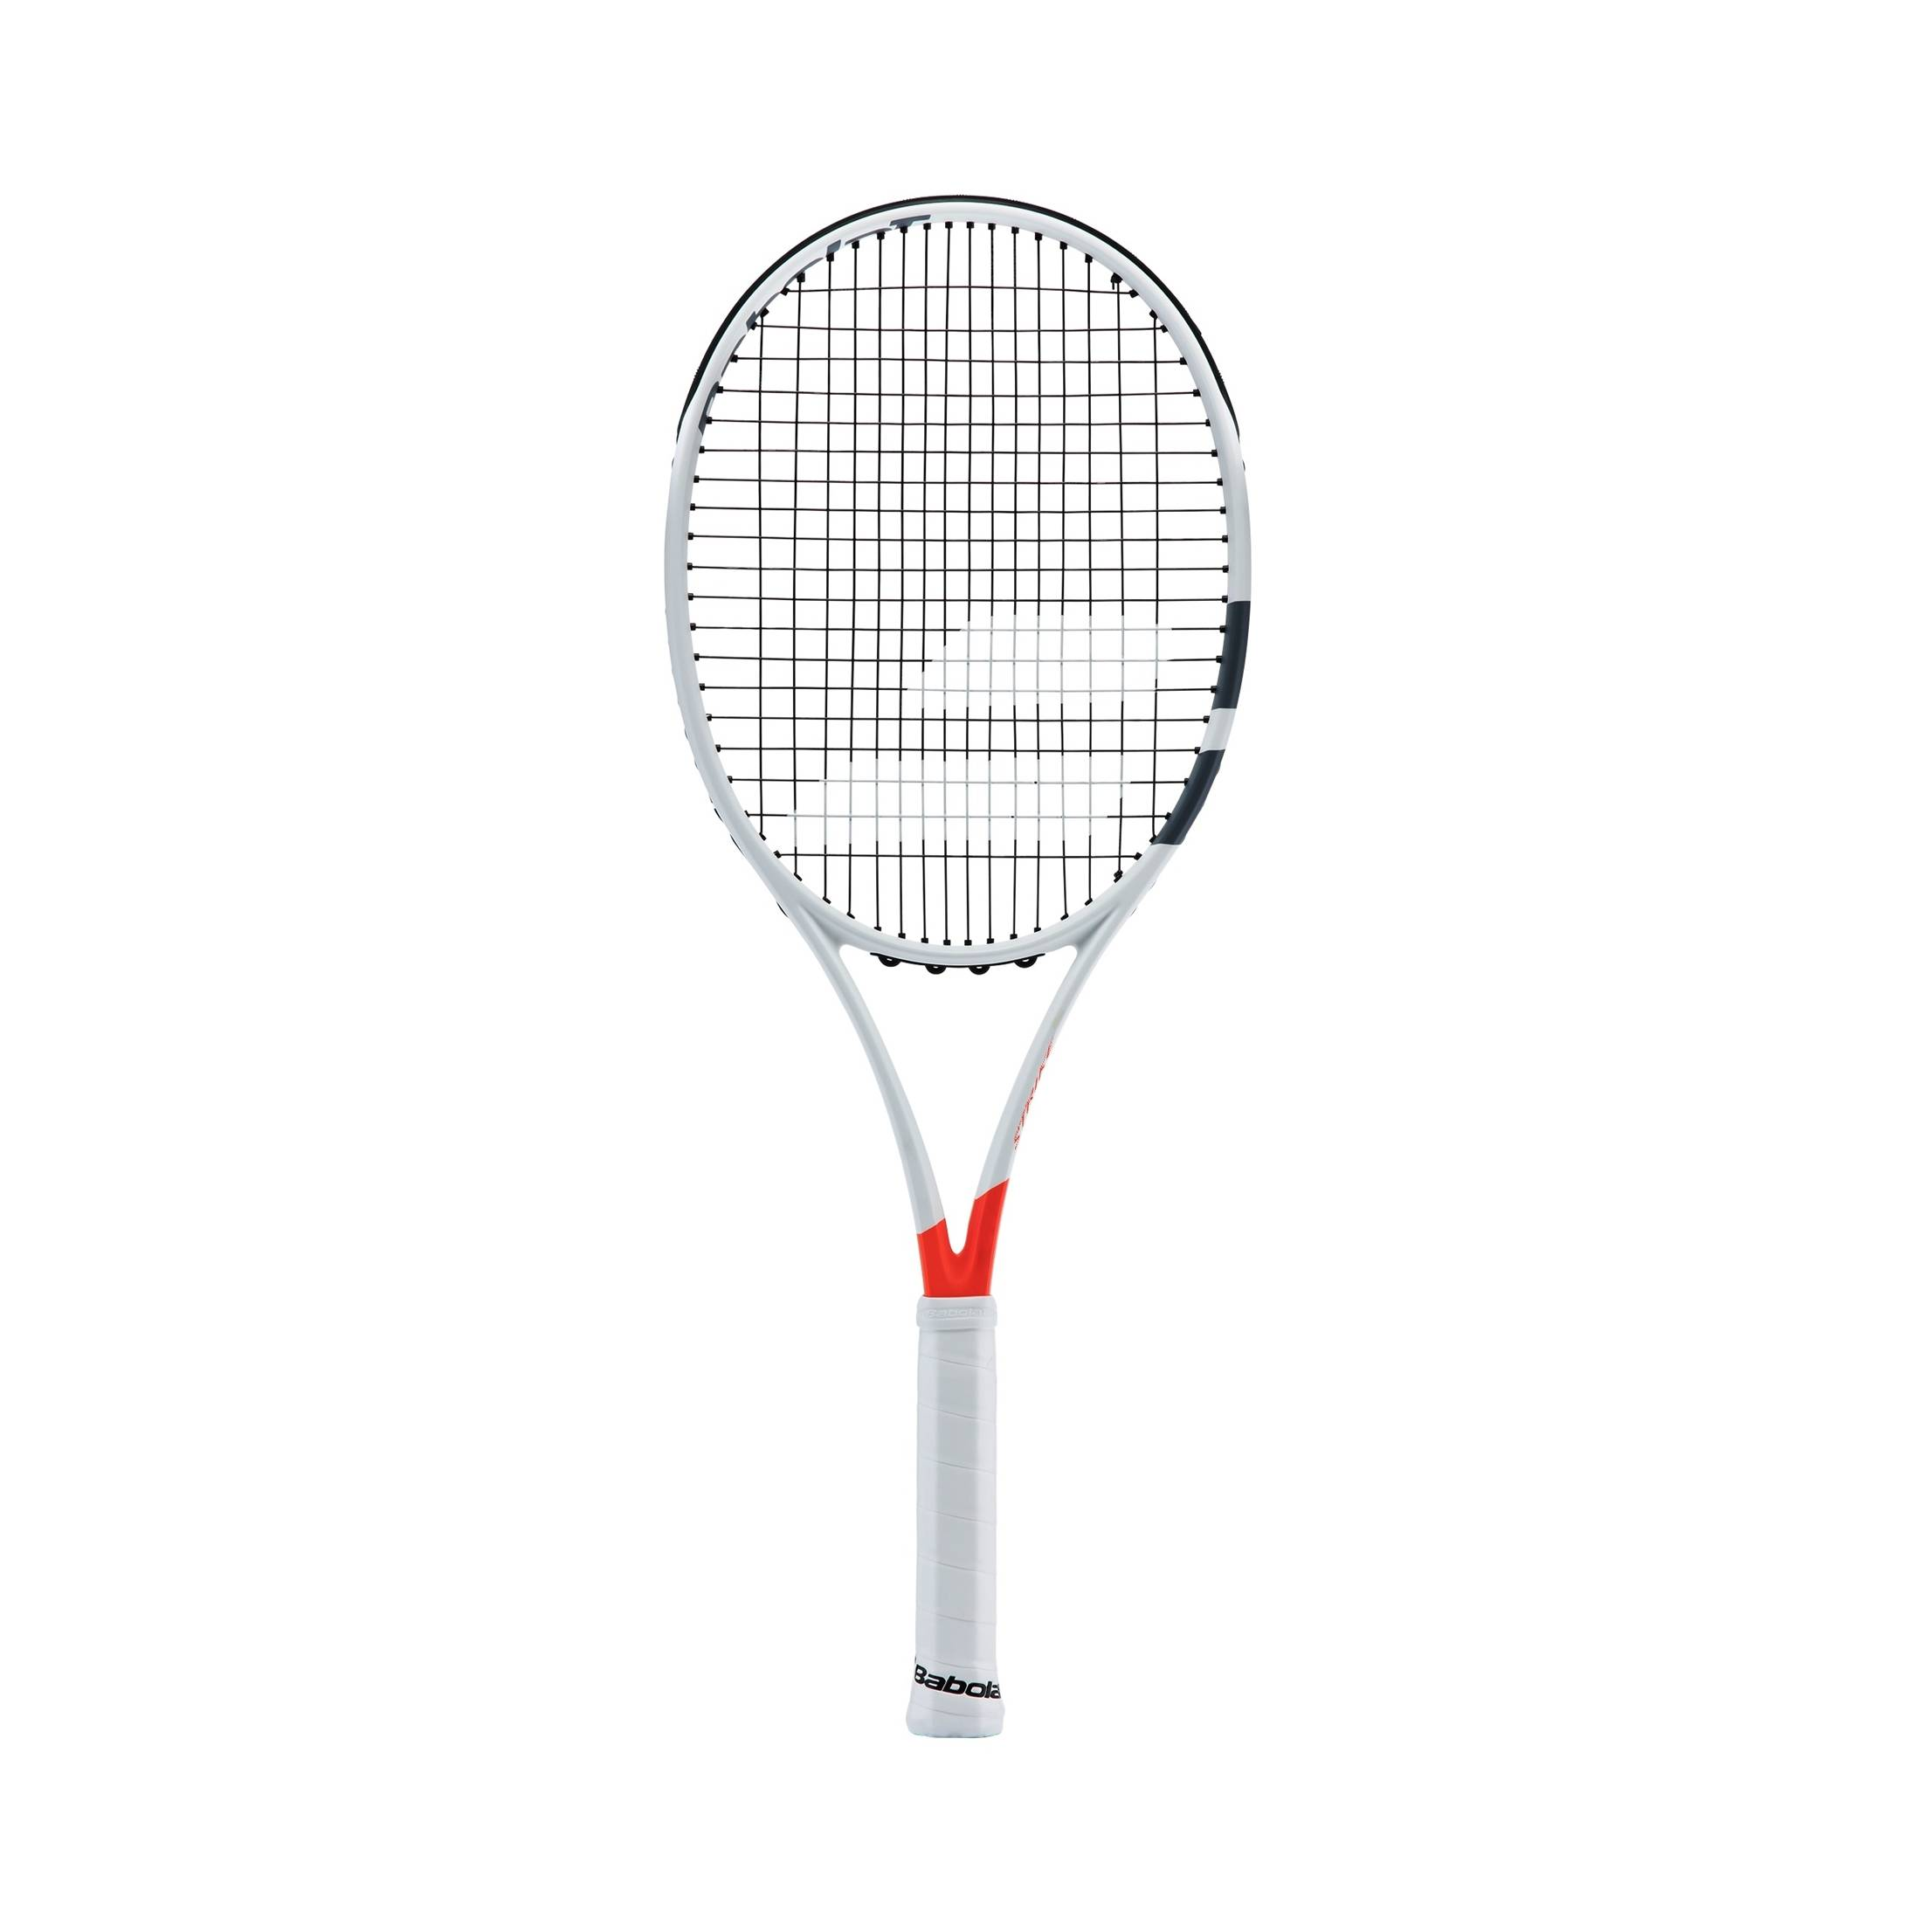 Babolat Pure Strike 16x19 (Project One7) 2 (4 1/4)